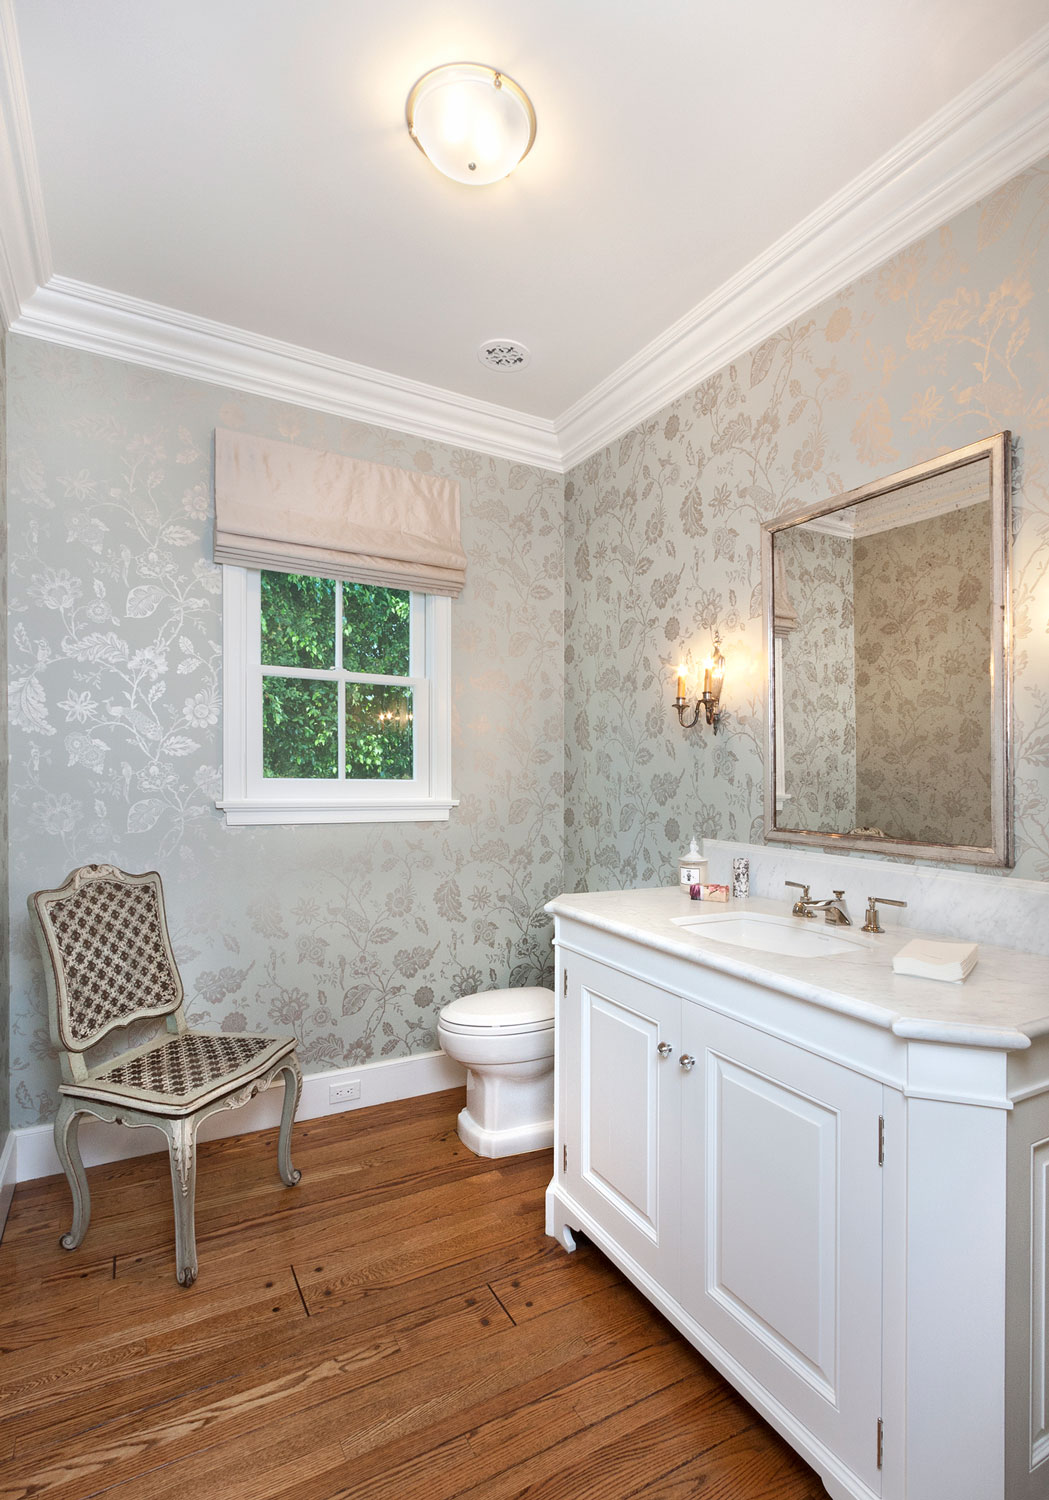 04-traditional-powder-room-marble-top-vanity-gary-drake-general-contractor.jpg